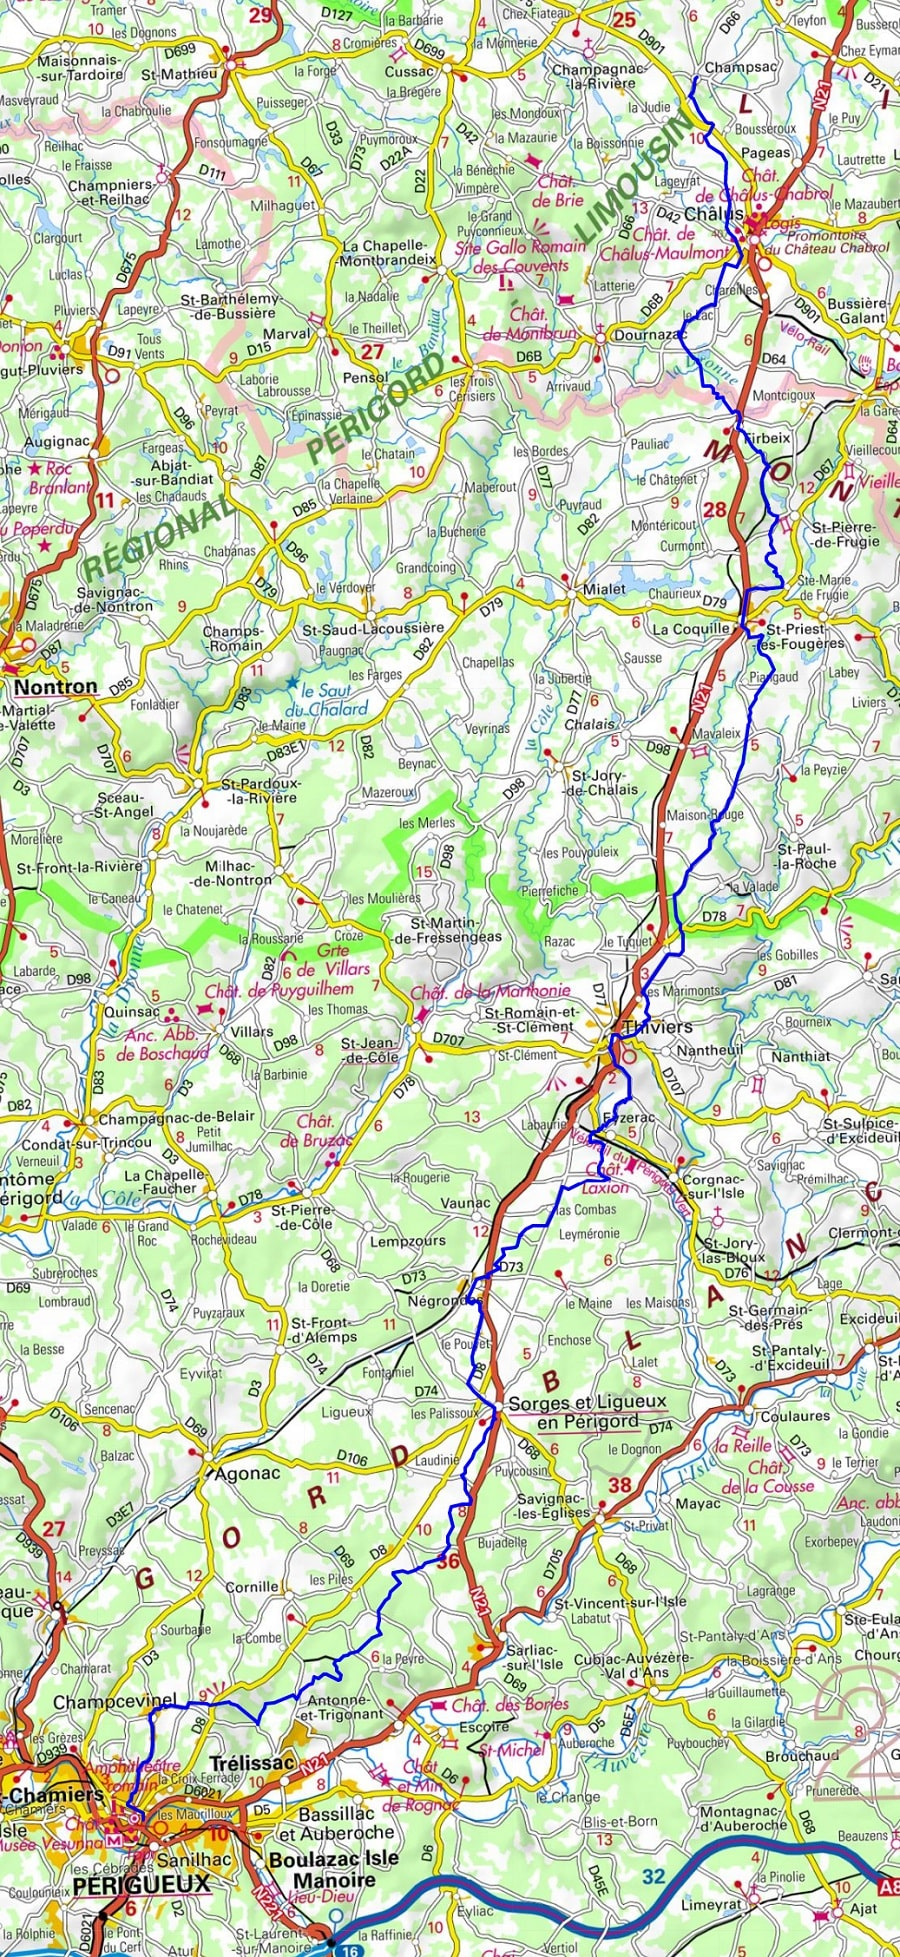 GR654 Walking from Cussac (Haute-Vienne) to St Astier (Dordogne)